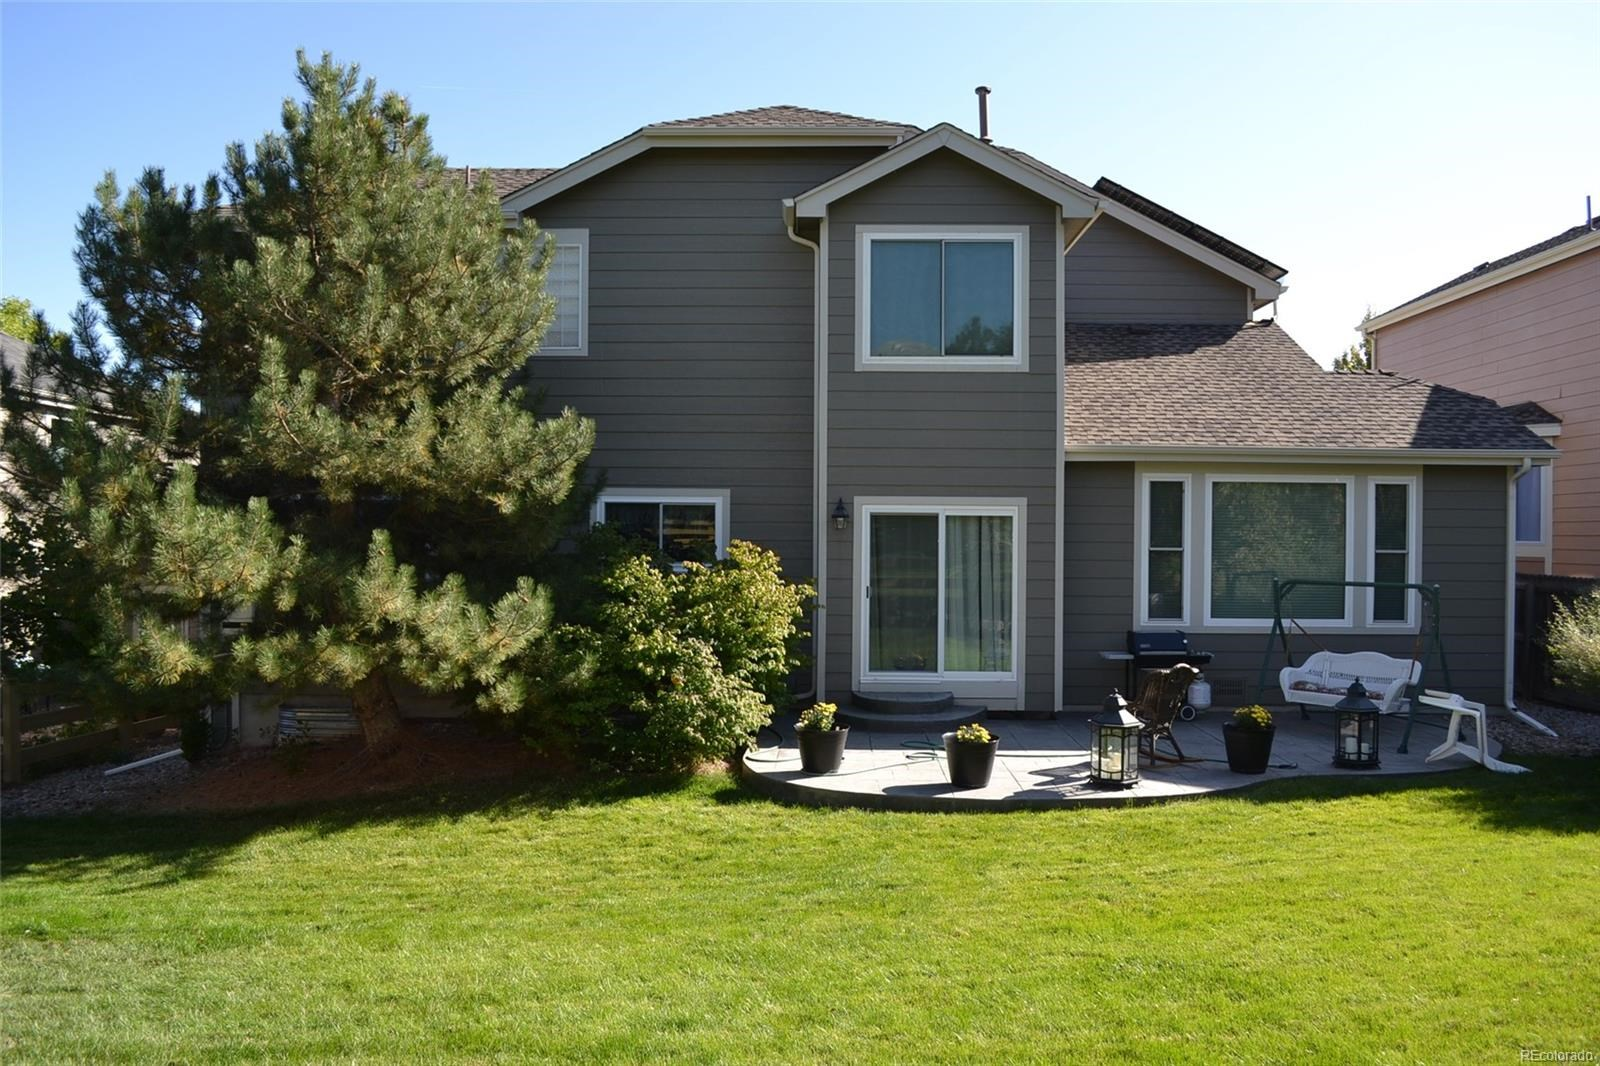 MLS# 8309835 - 27 - 1205 Imperial Way, Superior, CO 80027